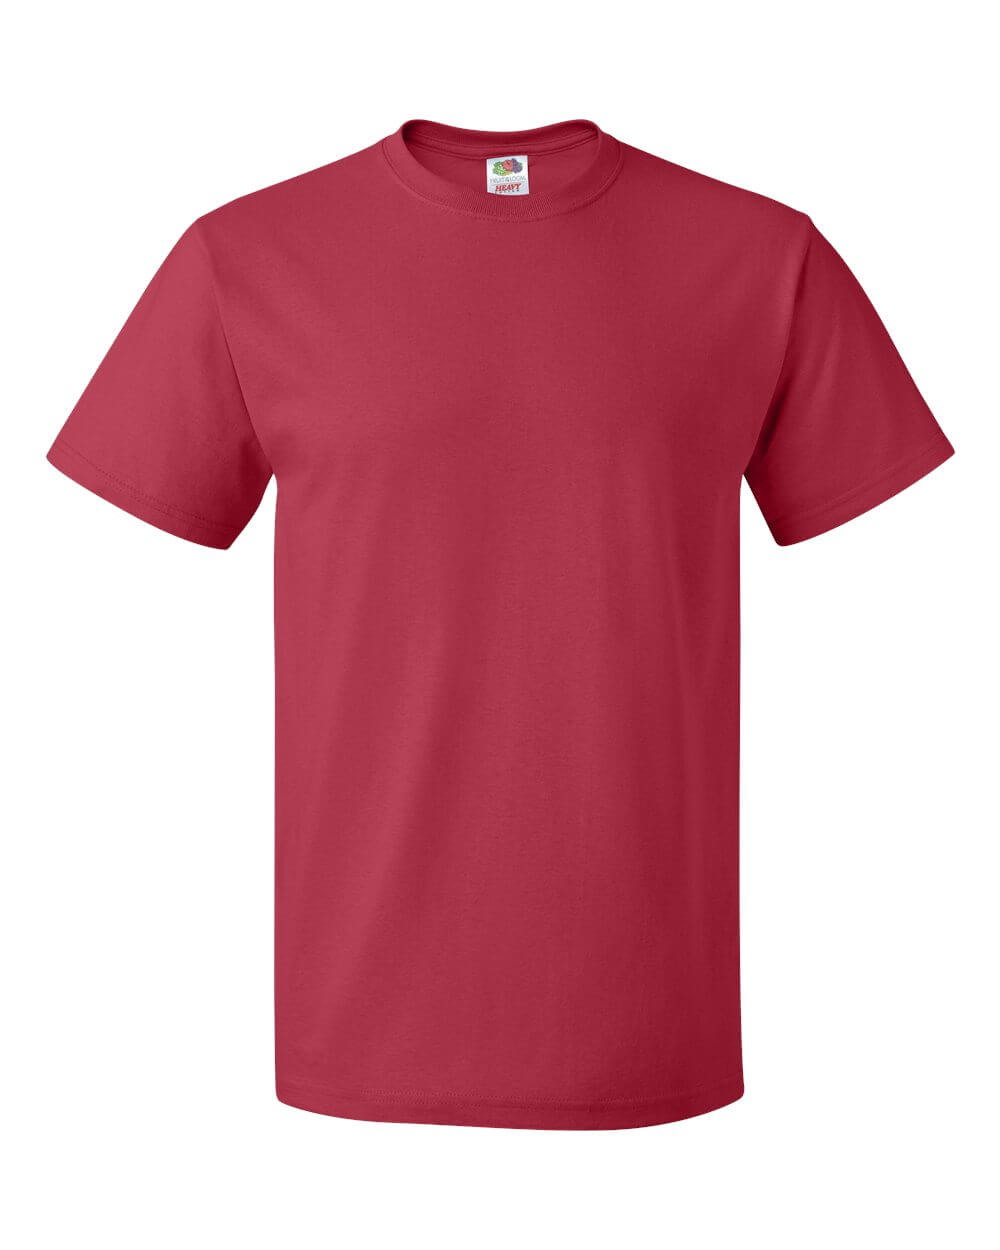 Fruit of the Loom Red Custom T Shirts